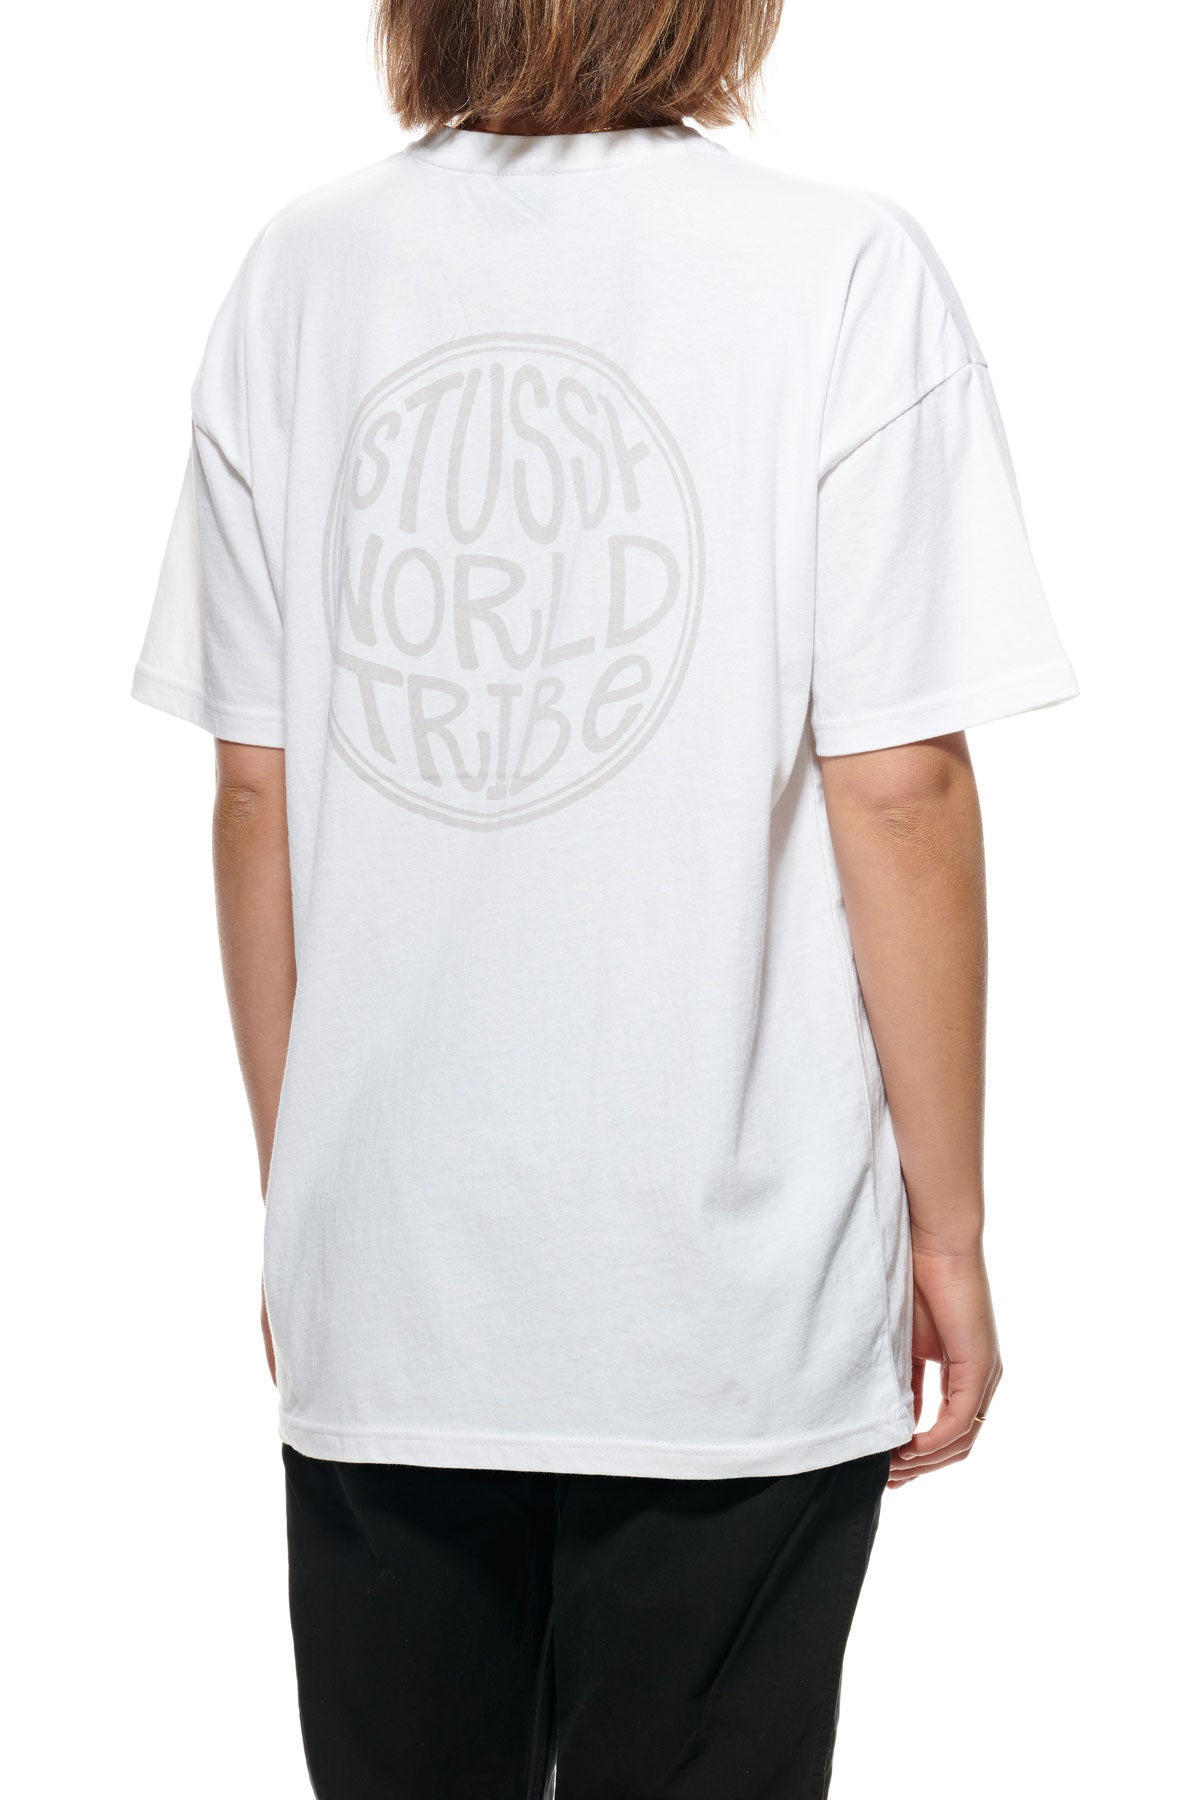 World Tribe Relaxed Tee